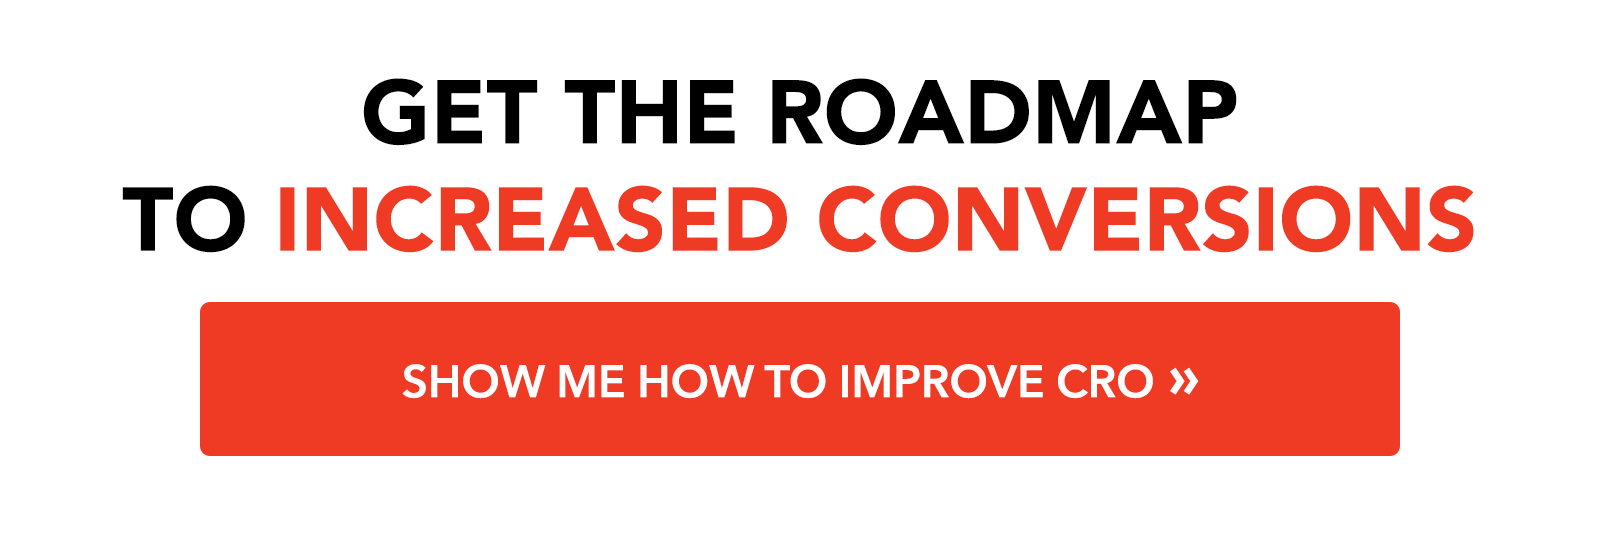 Get the roadmpa to increased conversion: show me how to improve CRO »